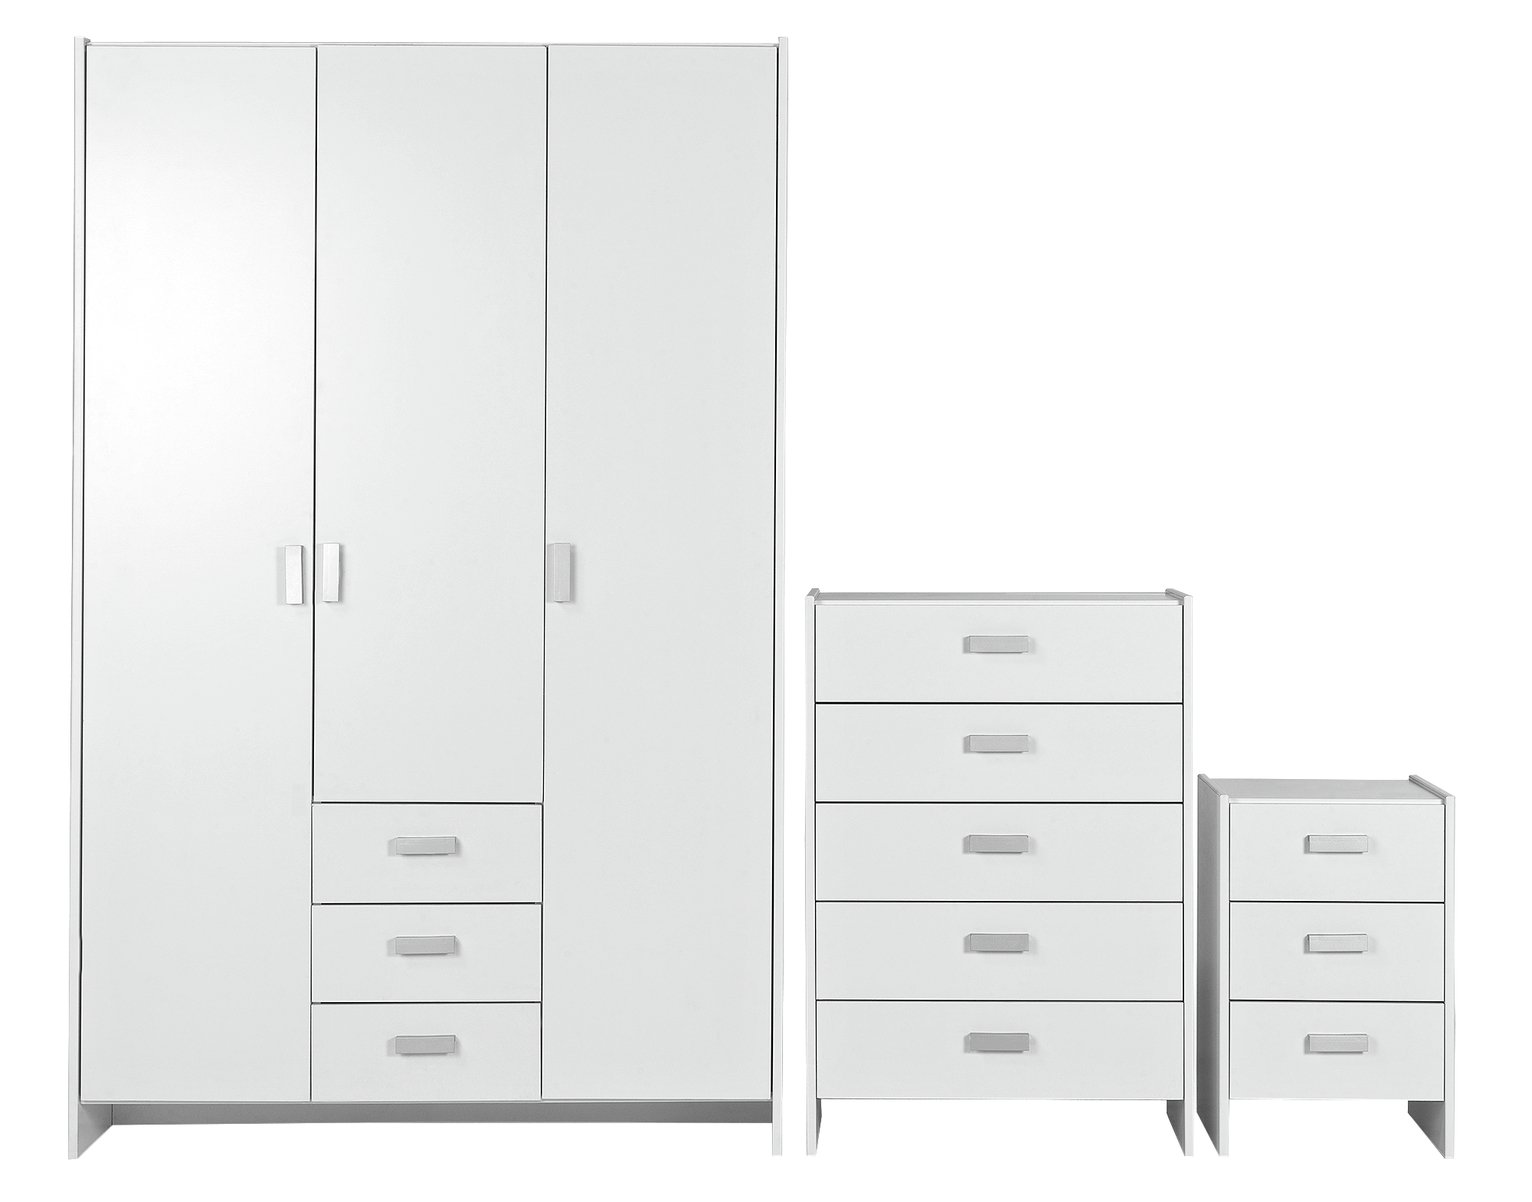 Argos Home Capella White 3 Door 3 Drawer Wardrobe Package review